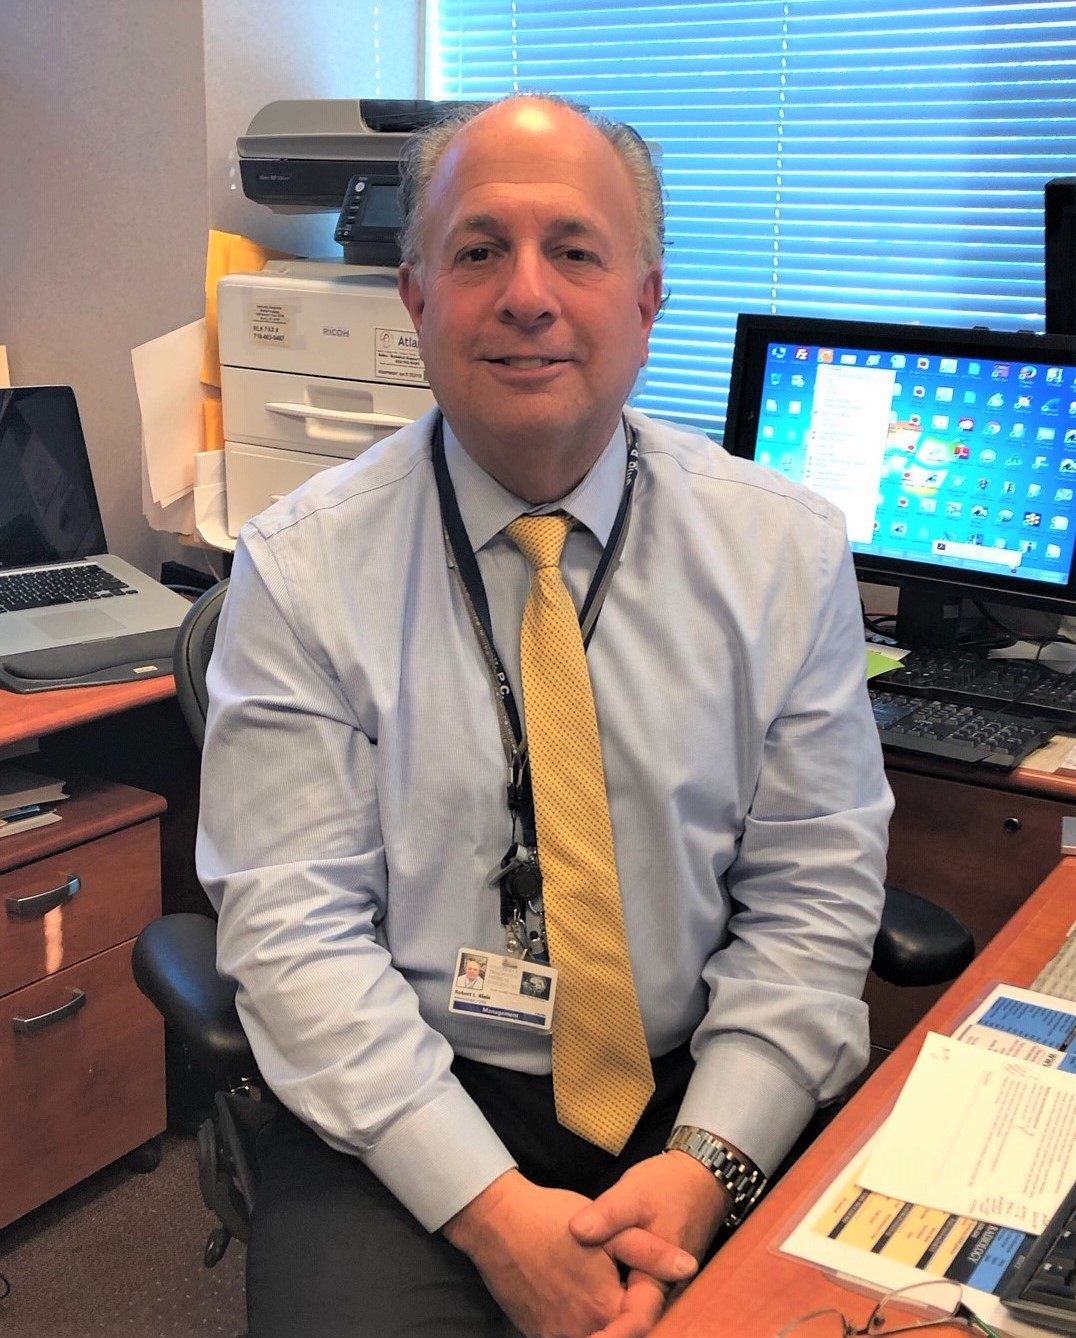 Robert Klein, practice administrator and chief operating officer of Universal Diagnostic Medical Imaging, shares how a CT calcium score exam uncovered a heart condition.